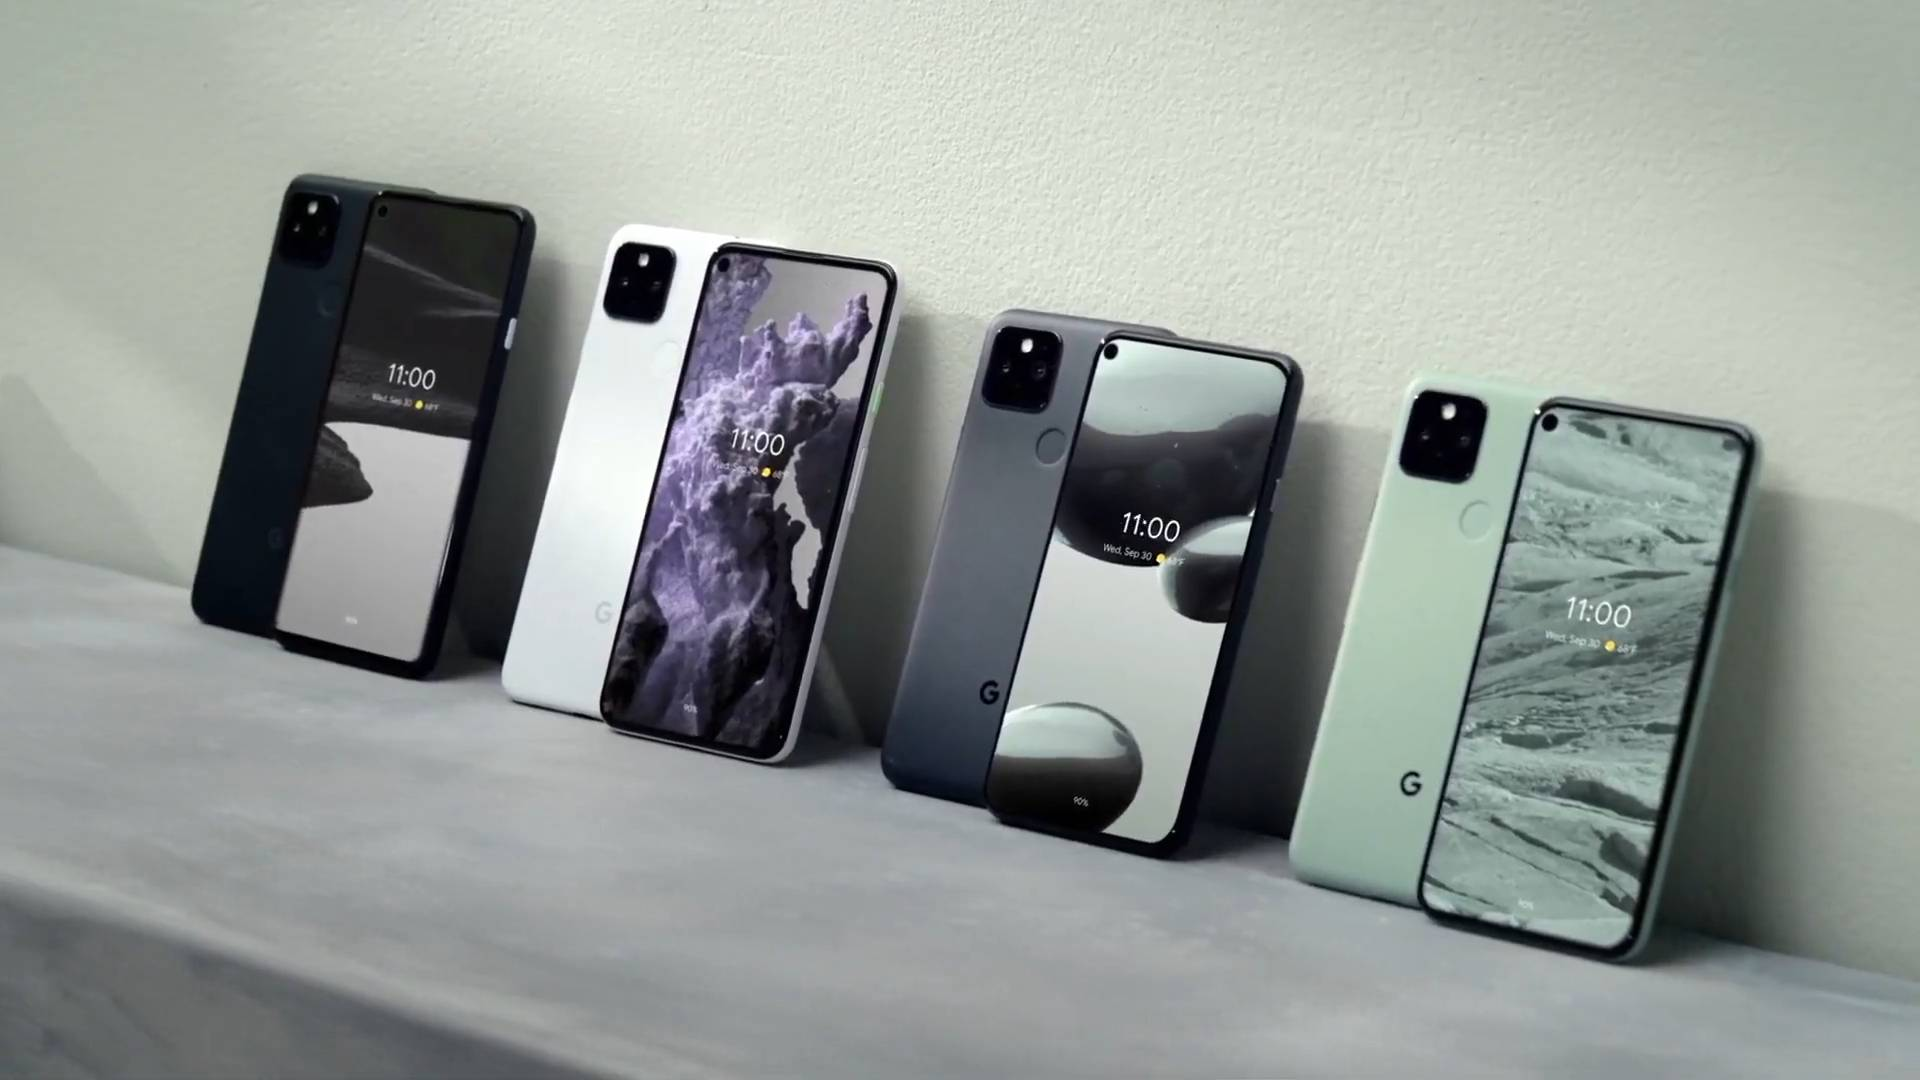 Google Pixel 5 And 4a 5g Best Deals Pricing Trade In Values And Availability